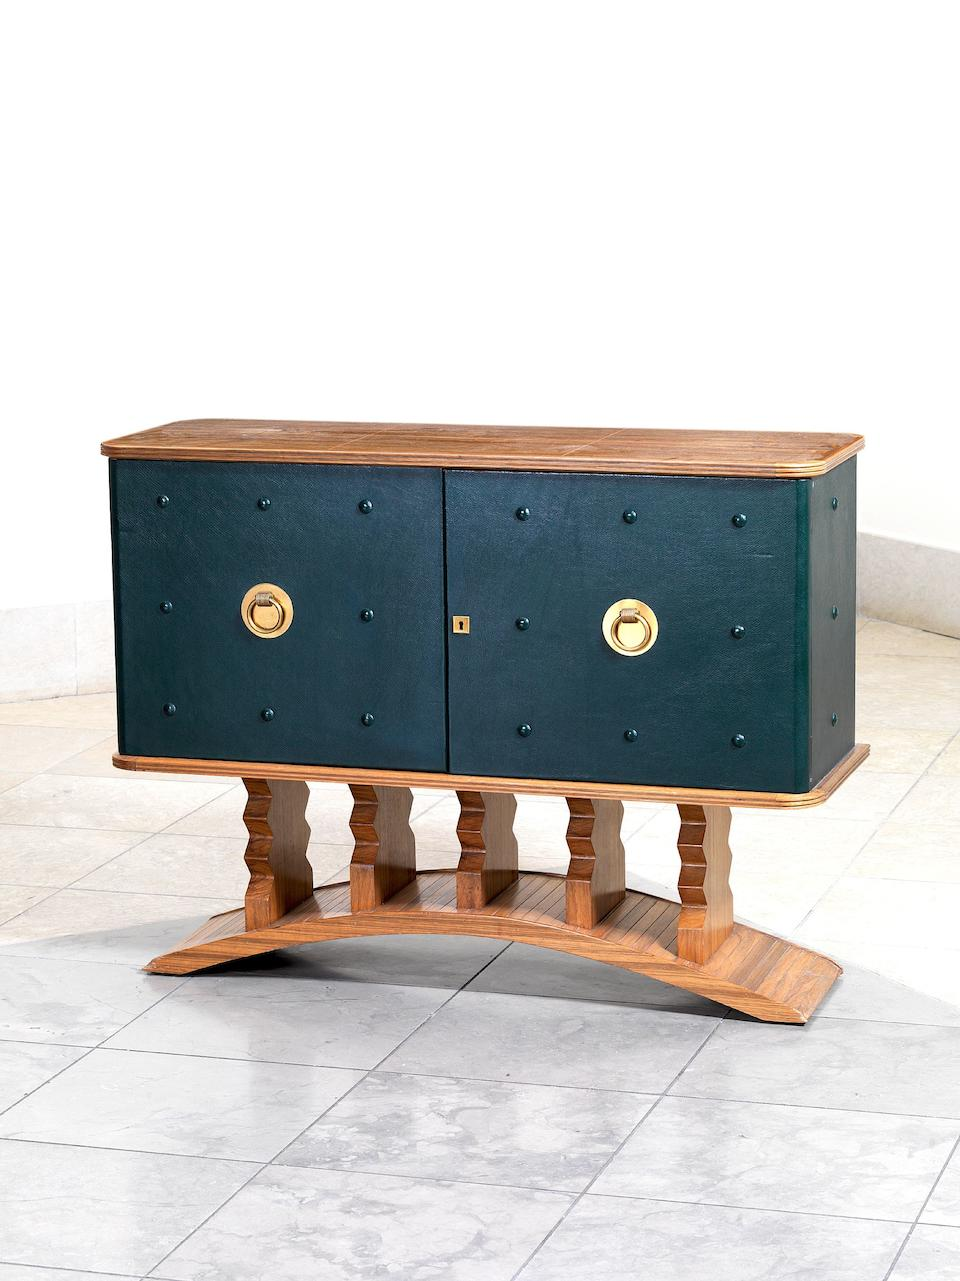 Laszlo Hoenig, a sideboard, circa 1958 walnut and leather with brass fittings